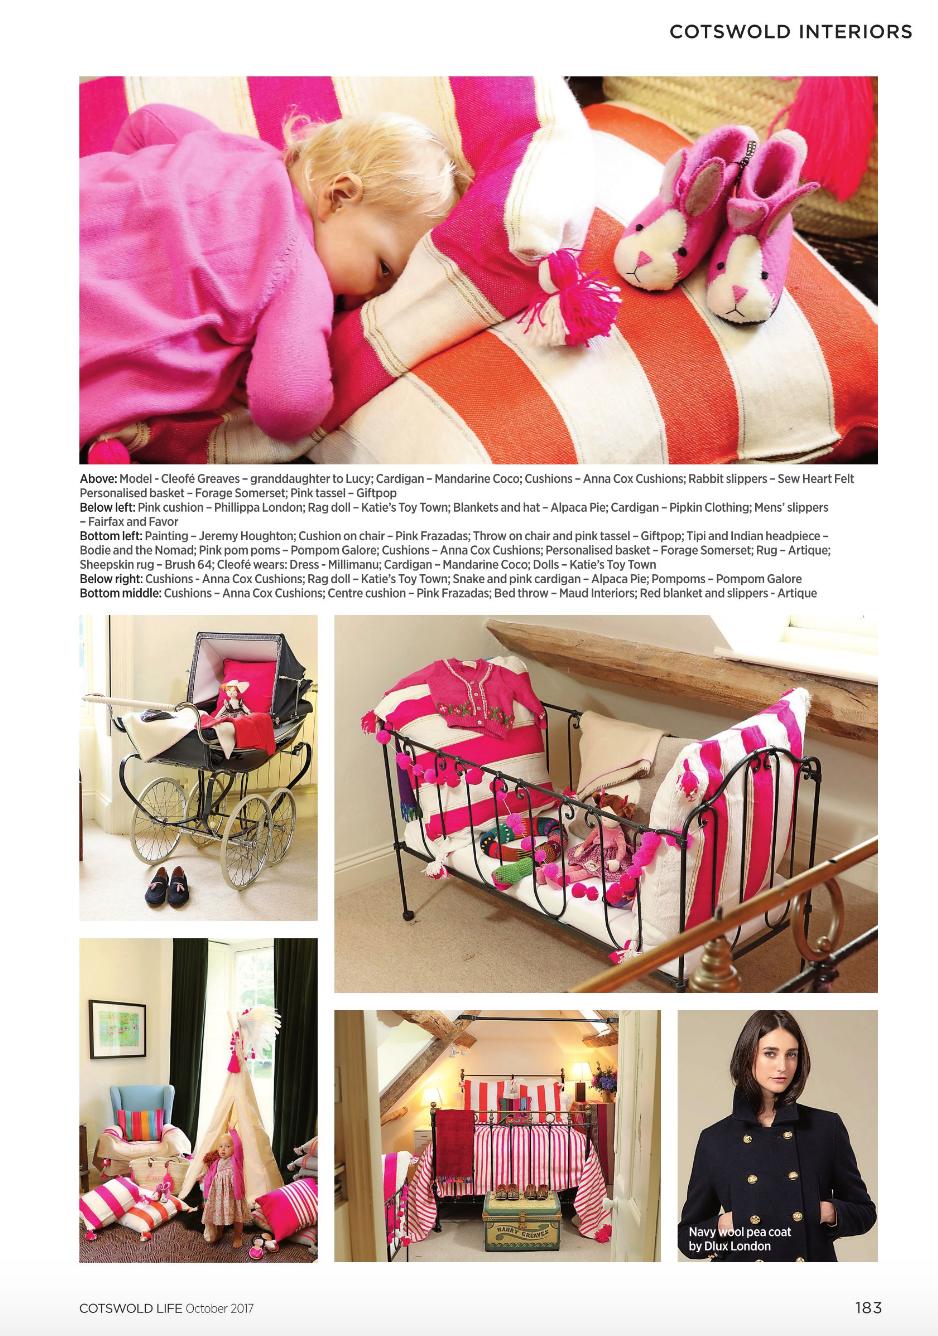 AnnaCoxCushions_Press_CotswoldsLife_6.png